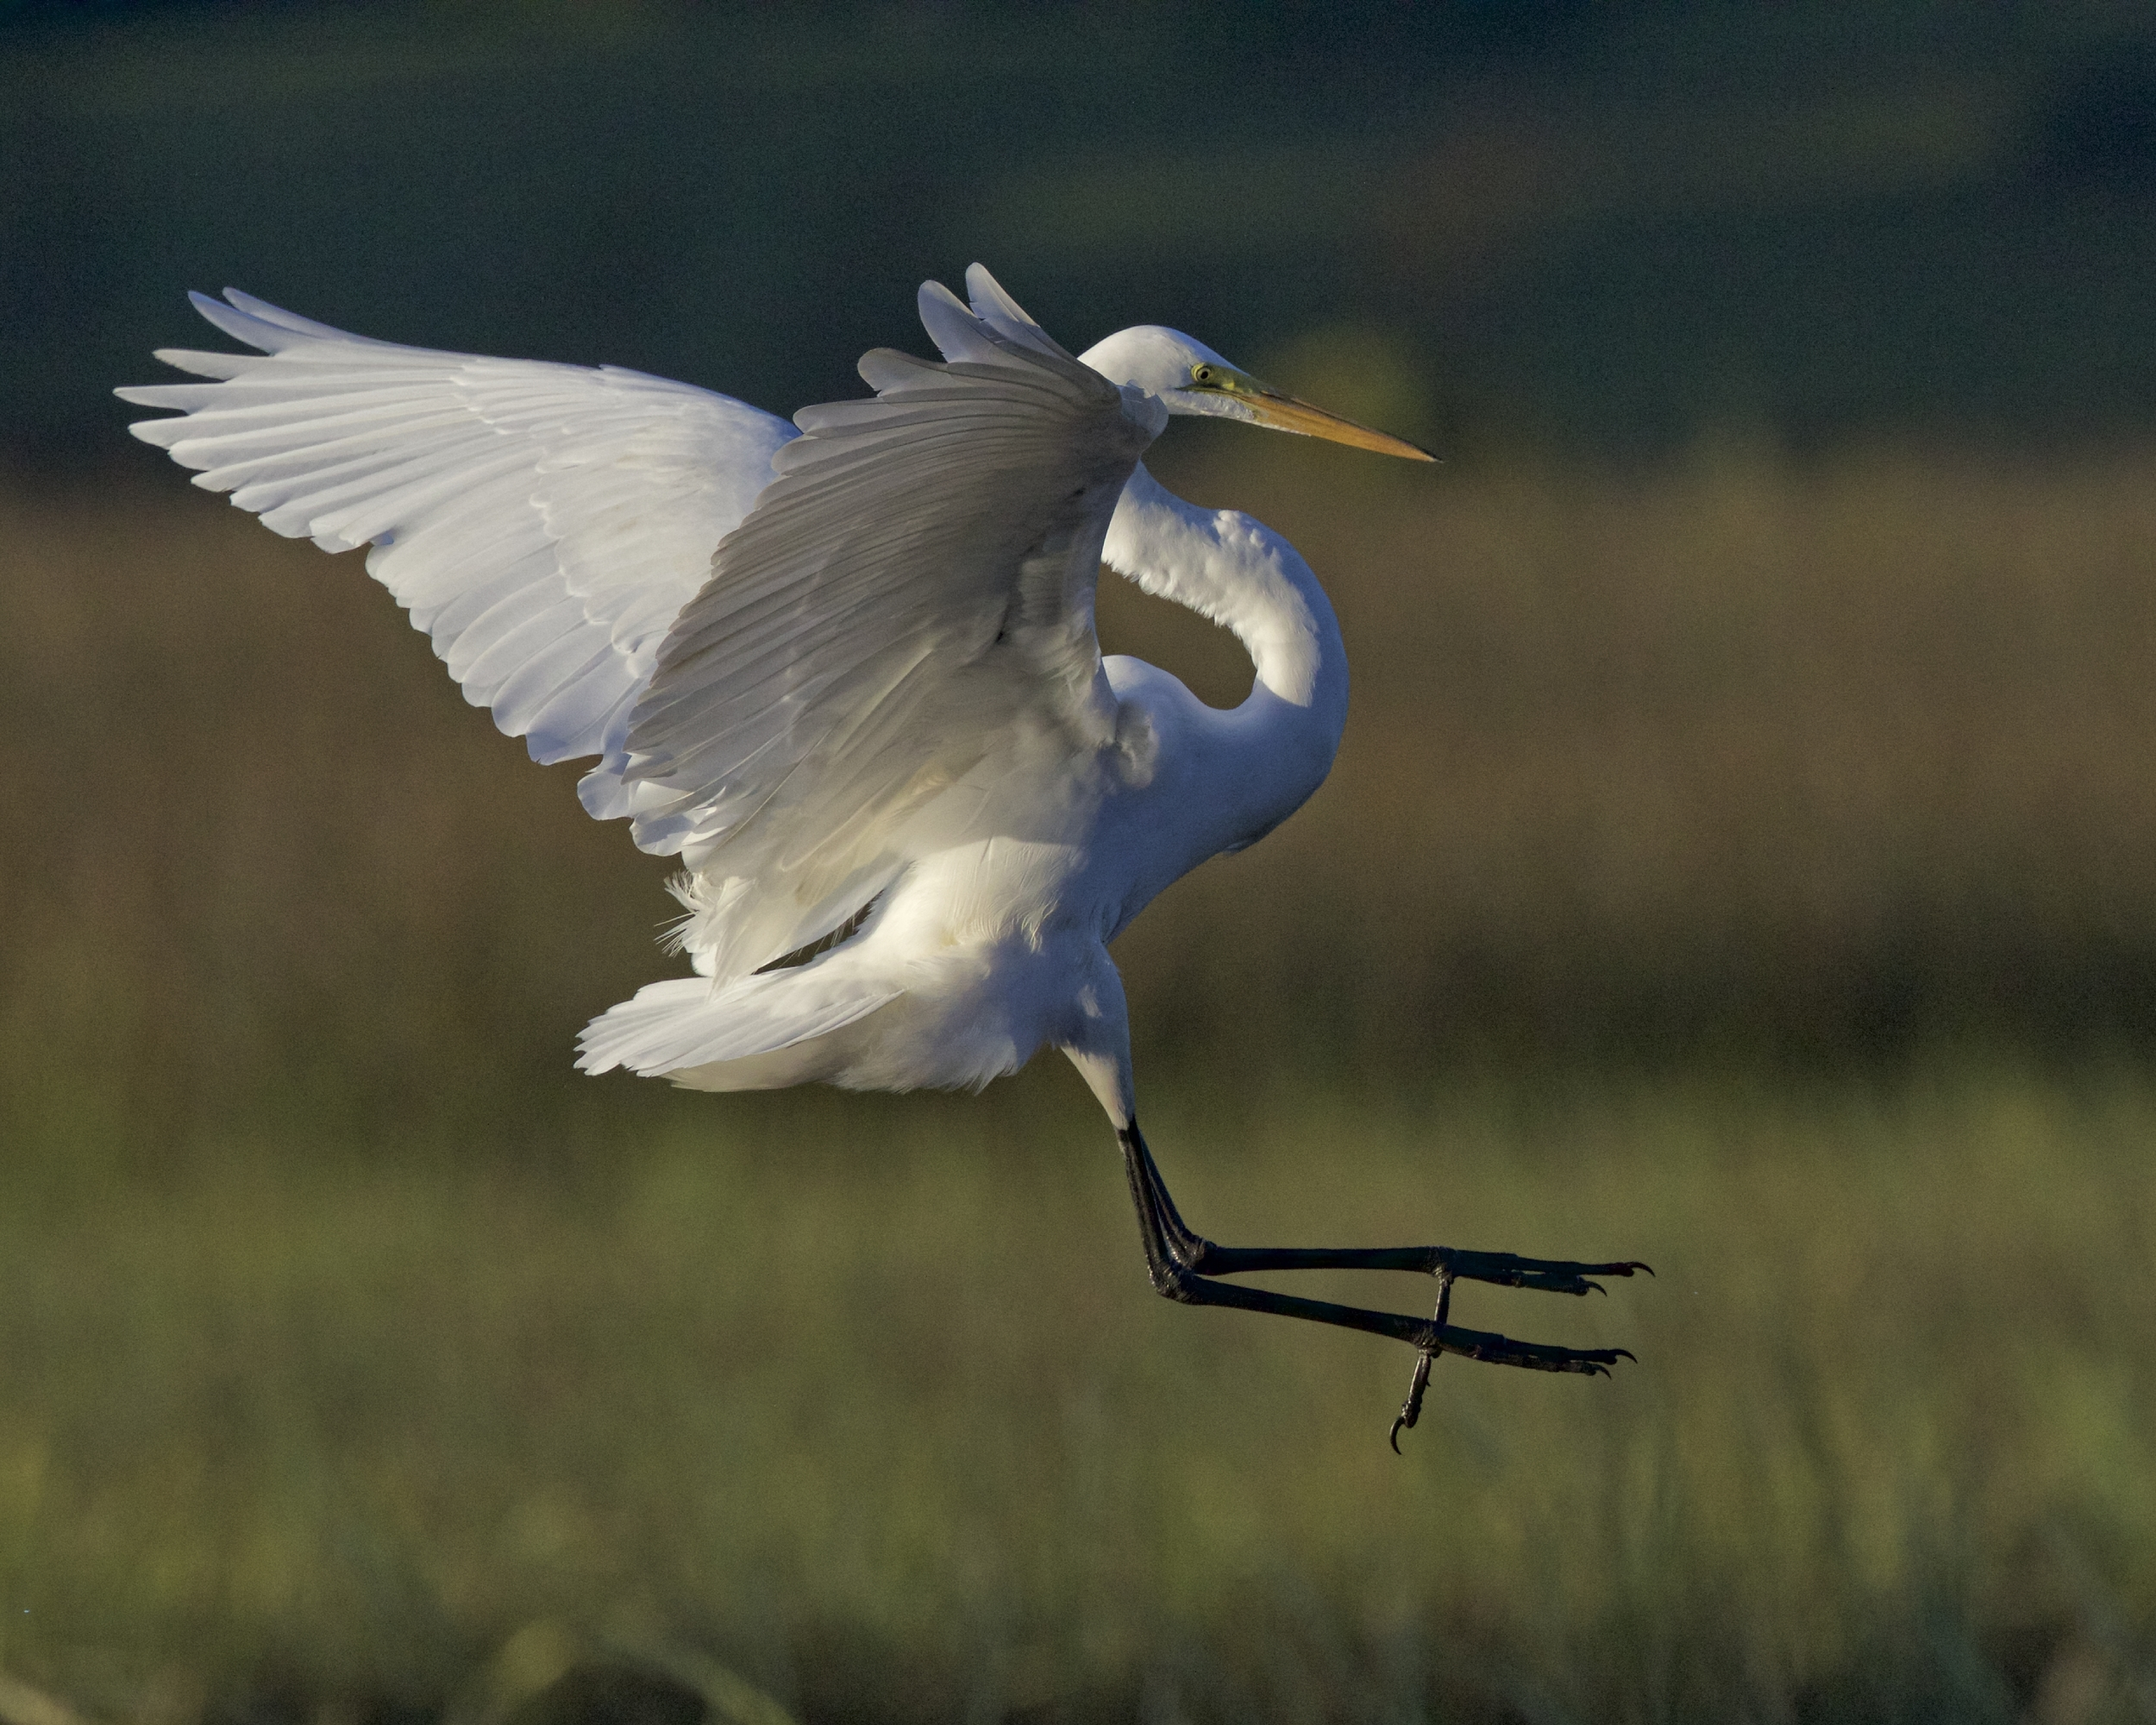 The Great Egret flies in and lands on the dock..where is the food?